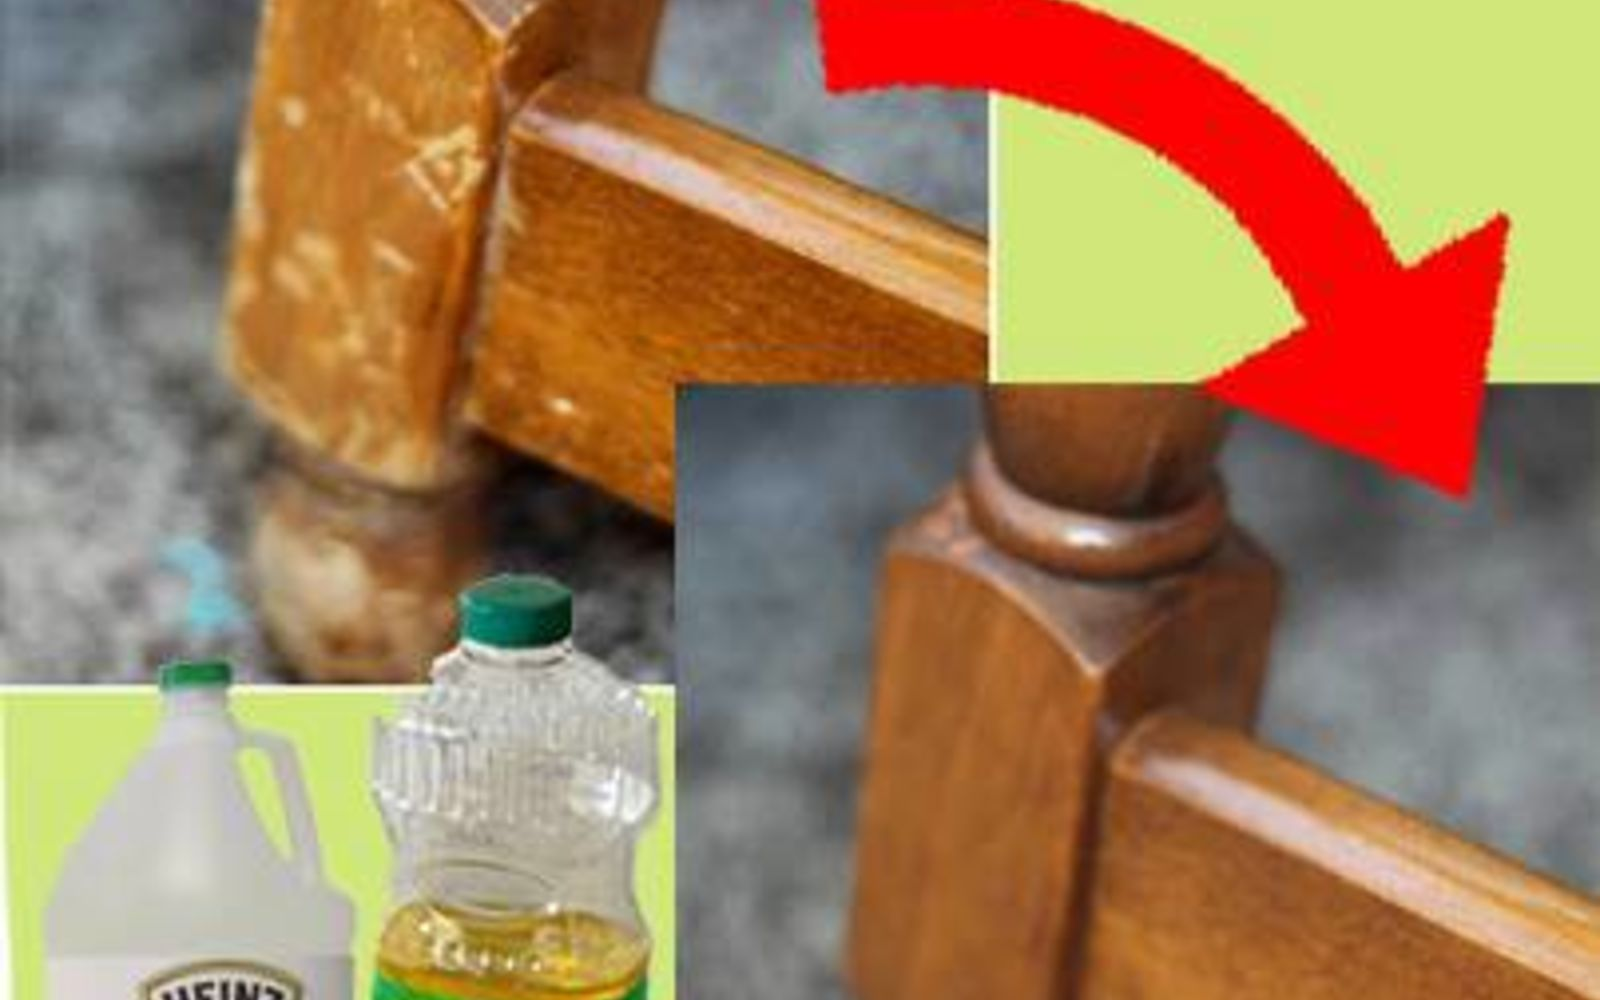 s 30 tricks to help you fix the wood in your home, Beautify Wood With Vinegar And Canola Oil